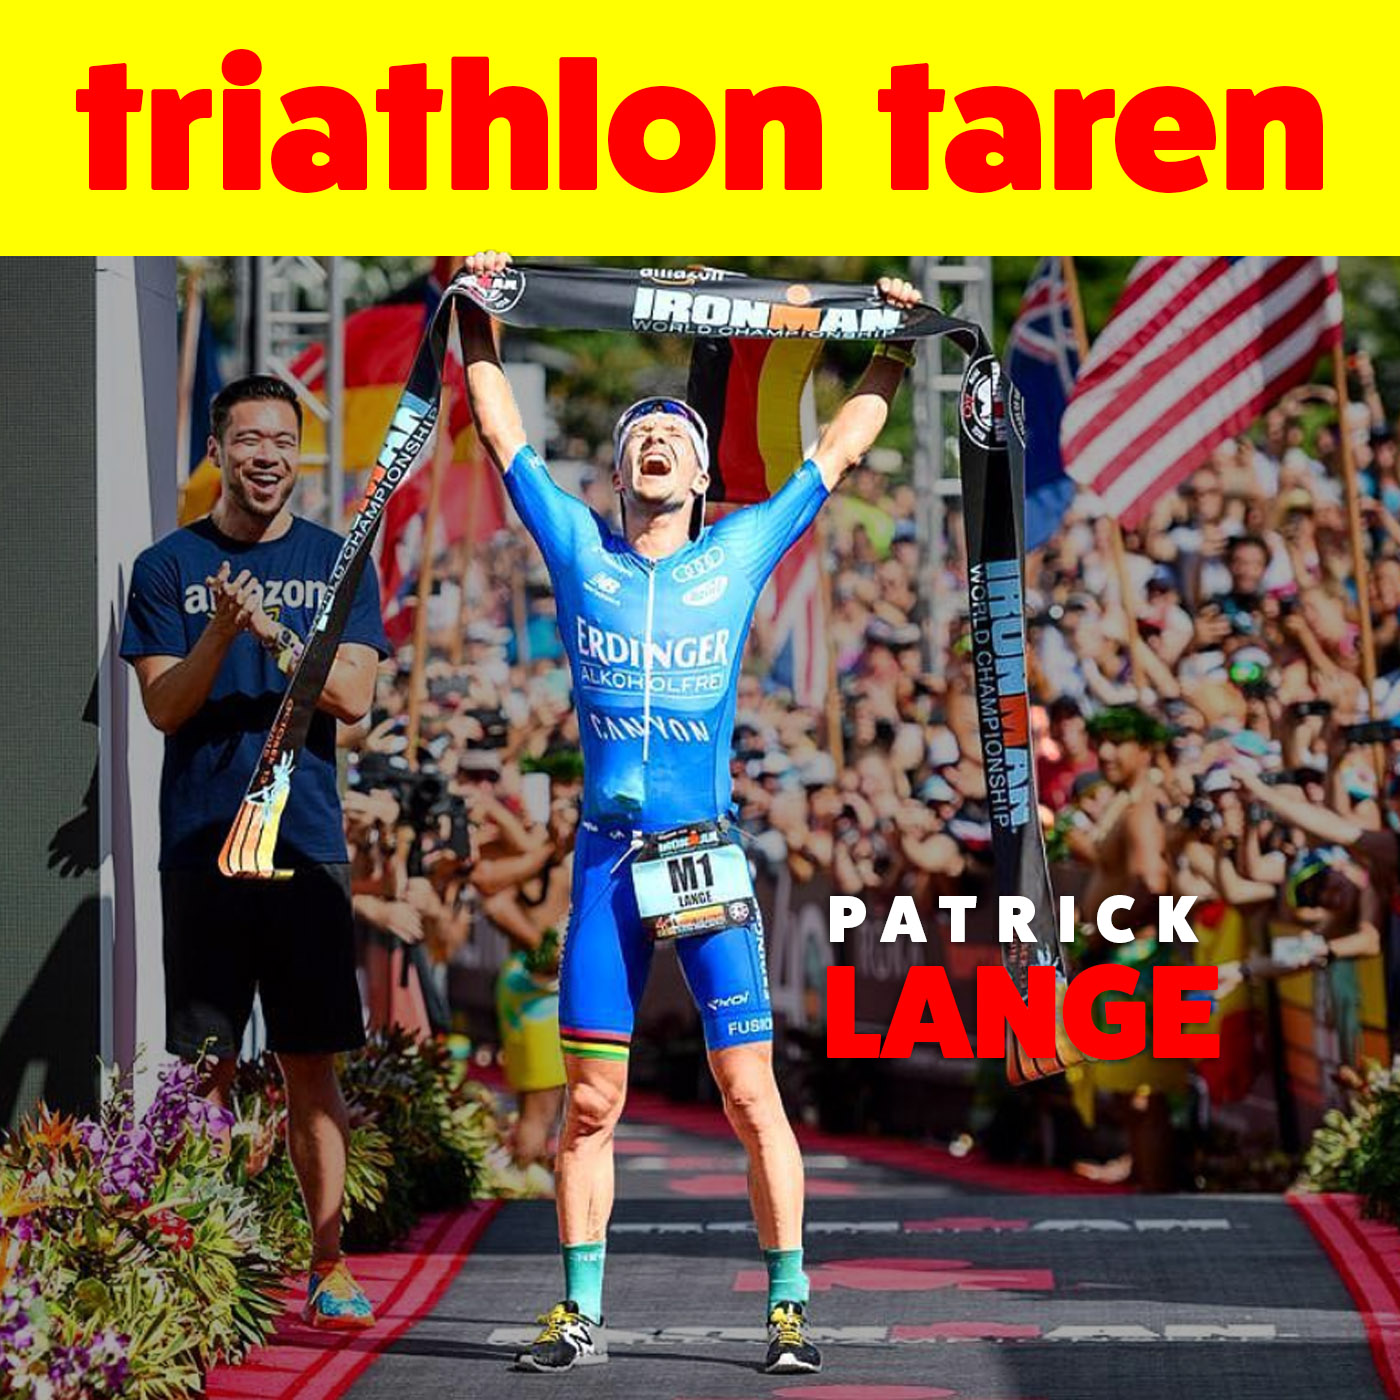 Patrick Lange | 2018 Ironman Kona World Champion